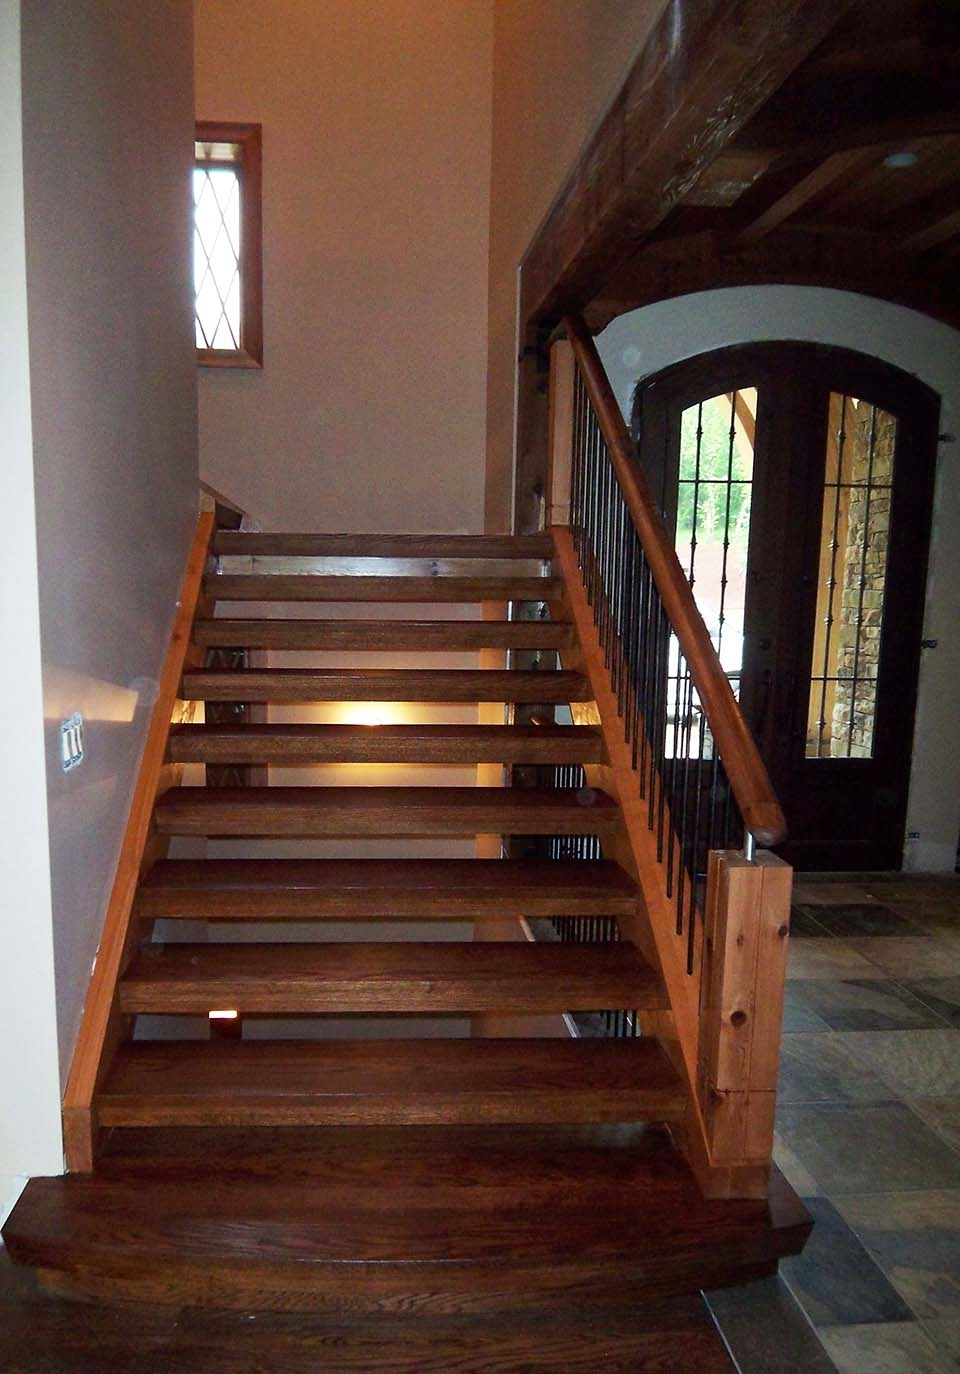 Rustic Staircase Southern Staircase Artistic Stairs   Rustic Handrails For Stairs   Basement   Wooden   Banister   Metal   Deck